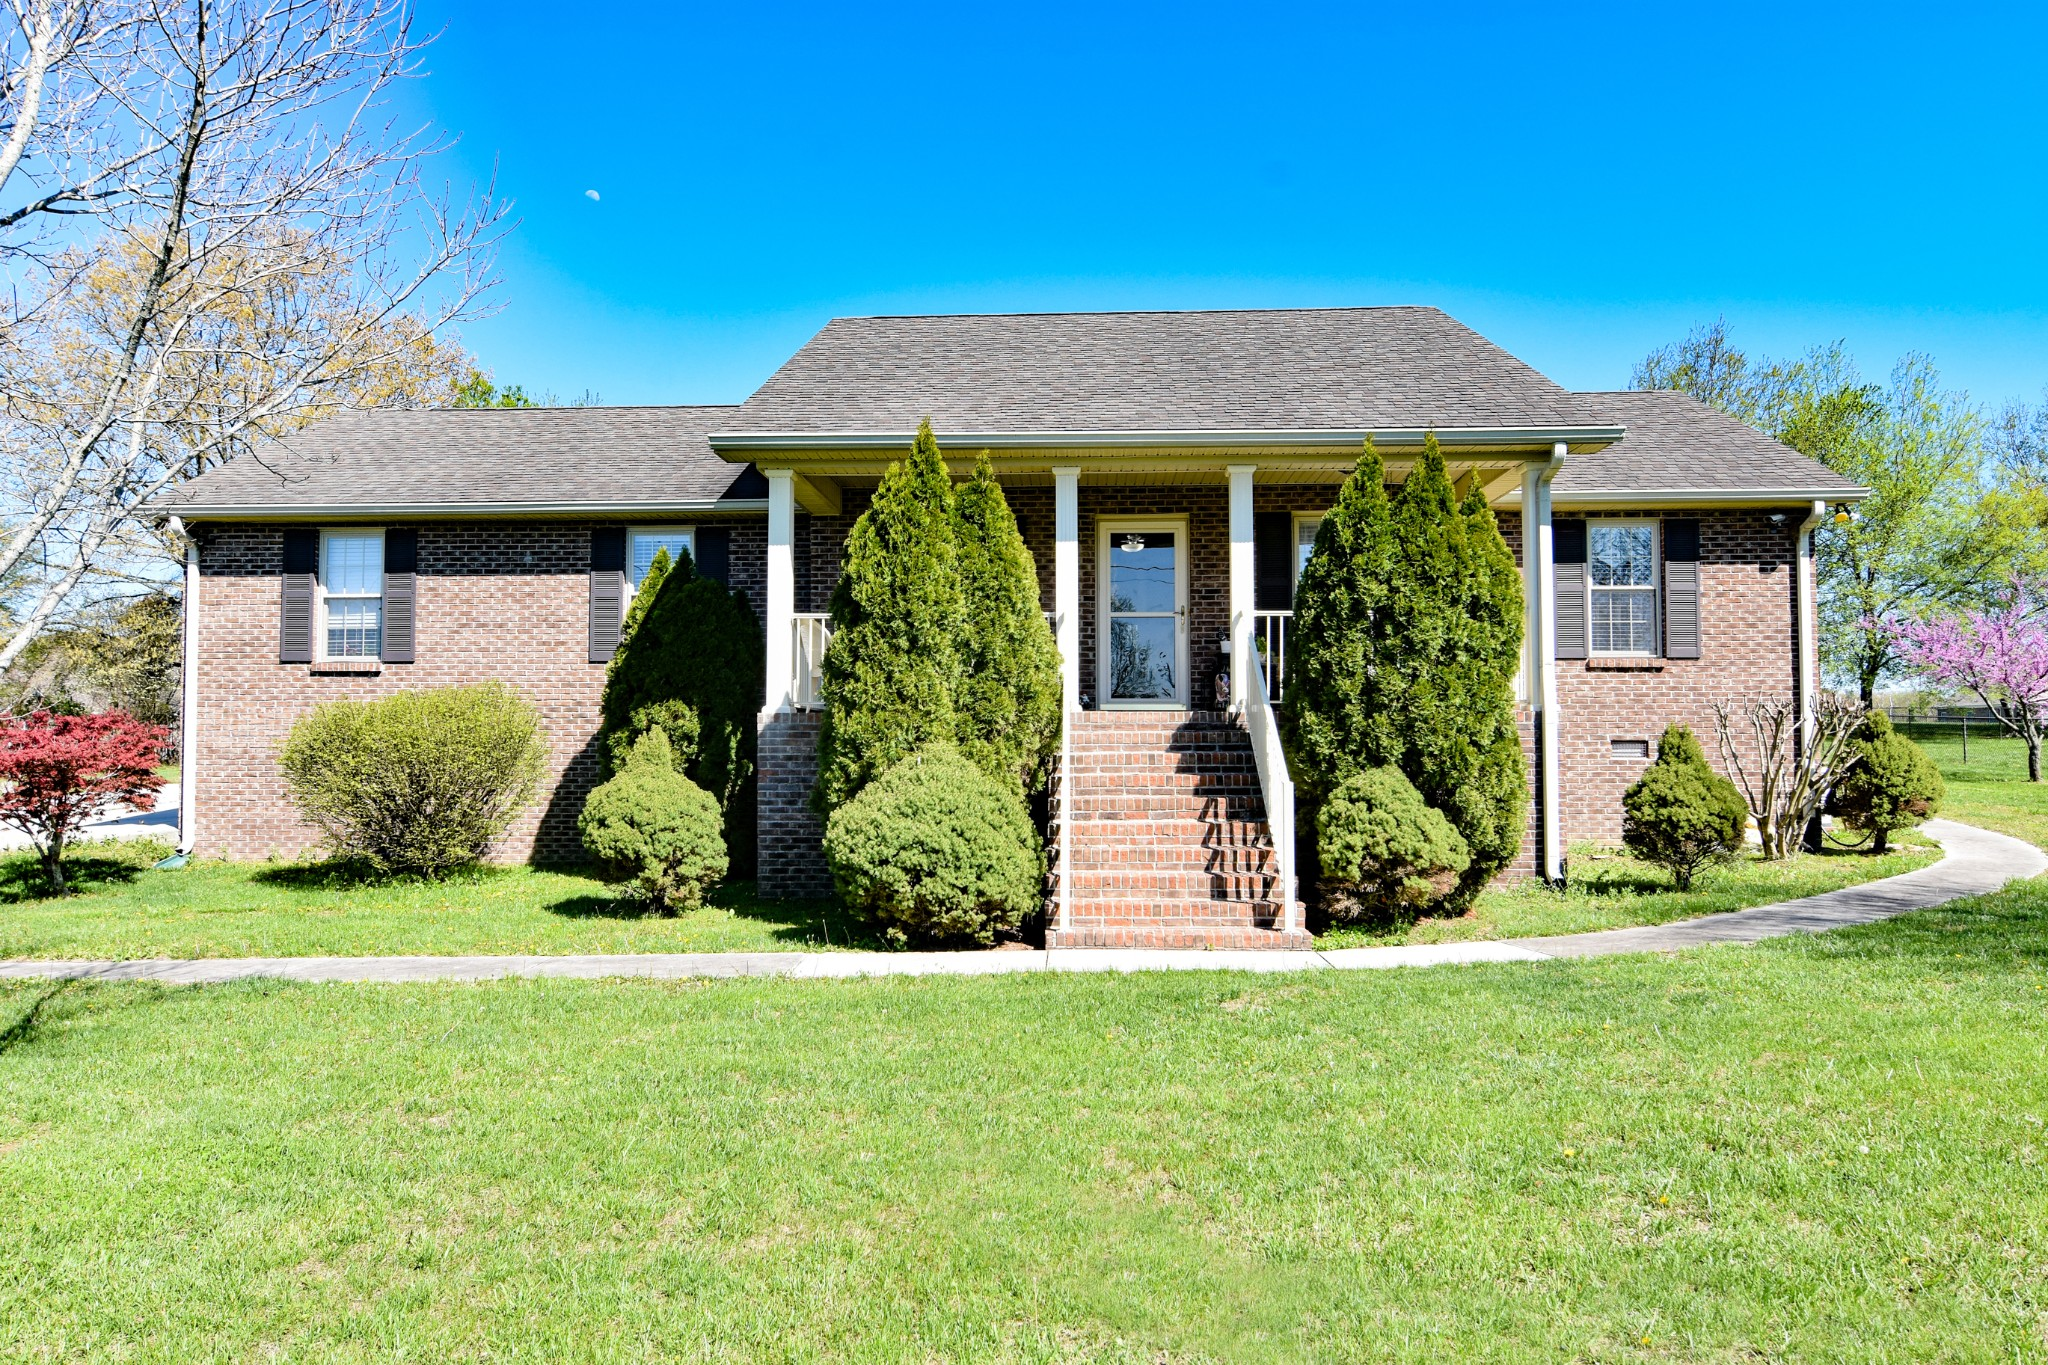 266 Farmwood Dr, Manchester, Tennessee